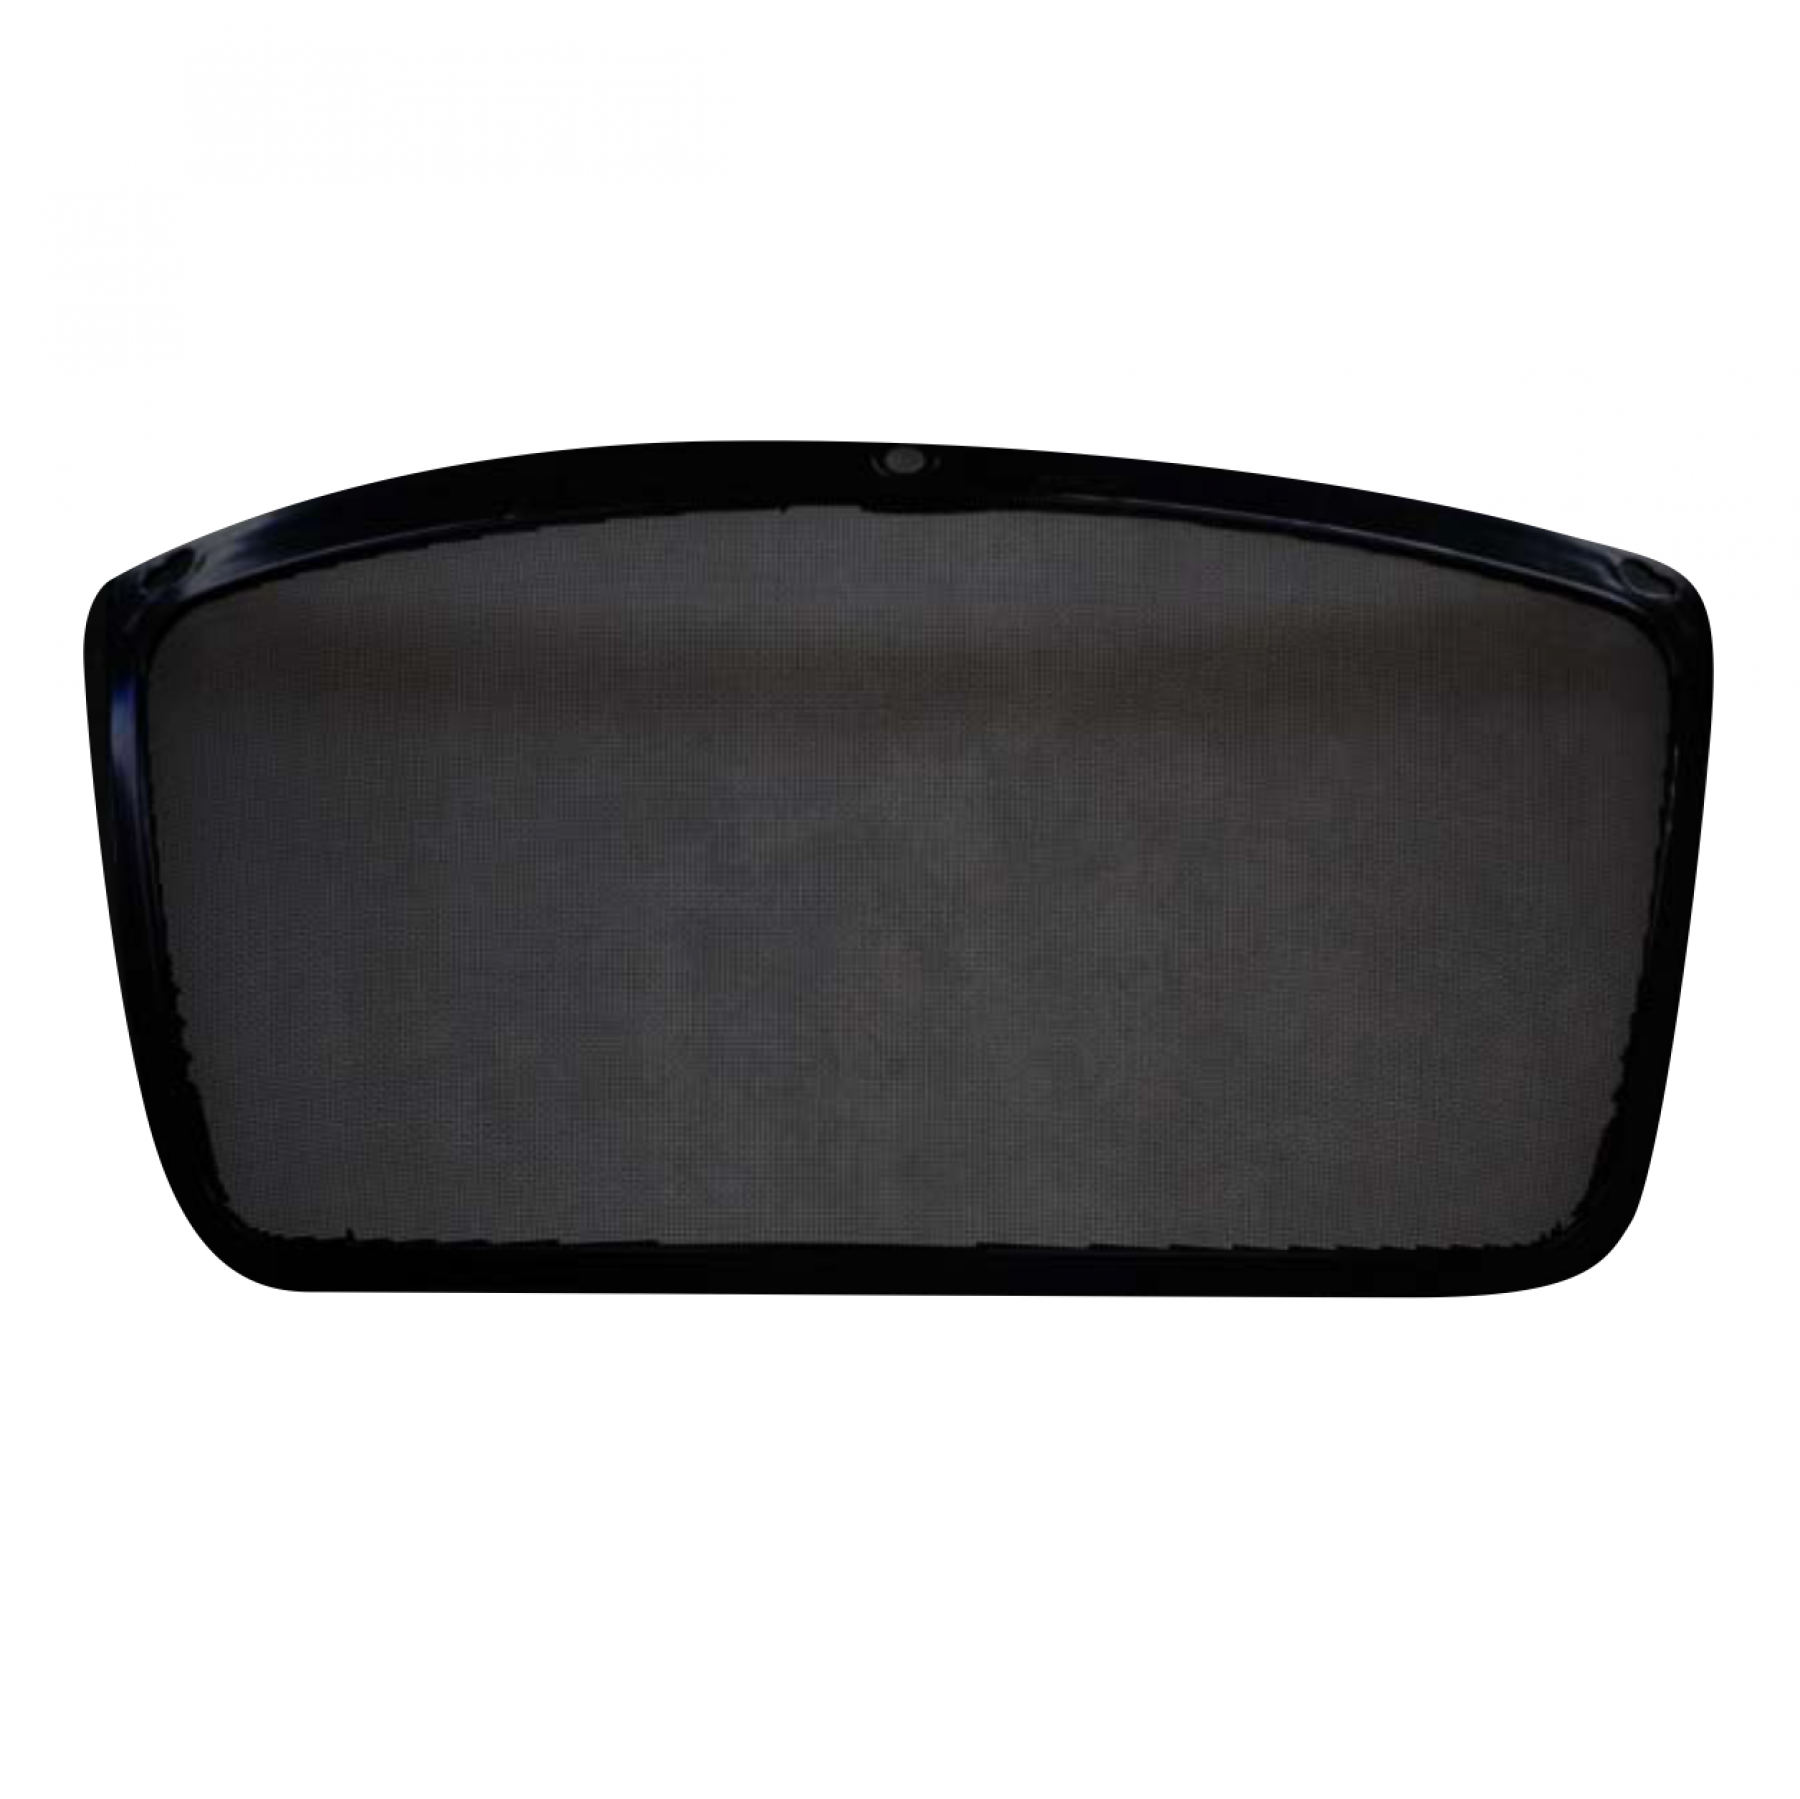 Dromex Spare Gause Visors To Fit The Bushmaster